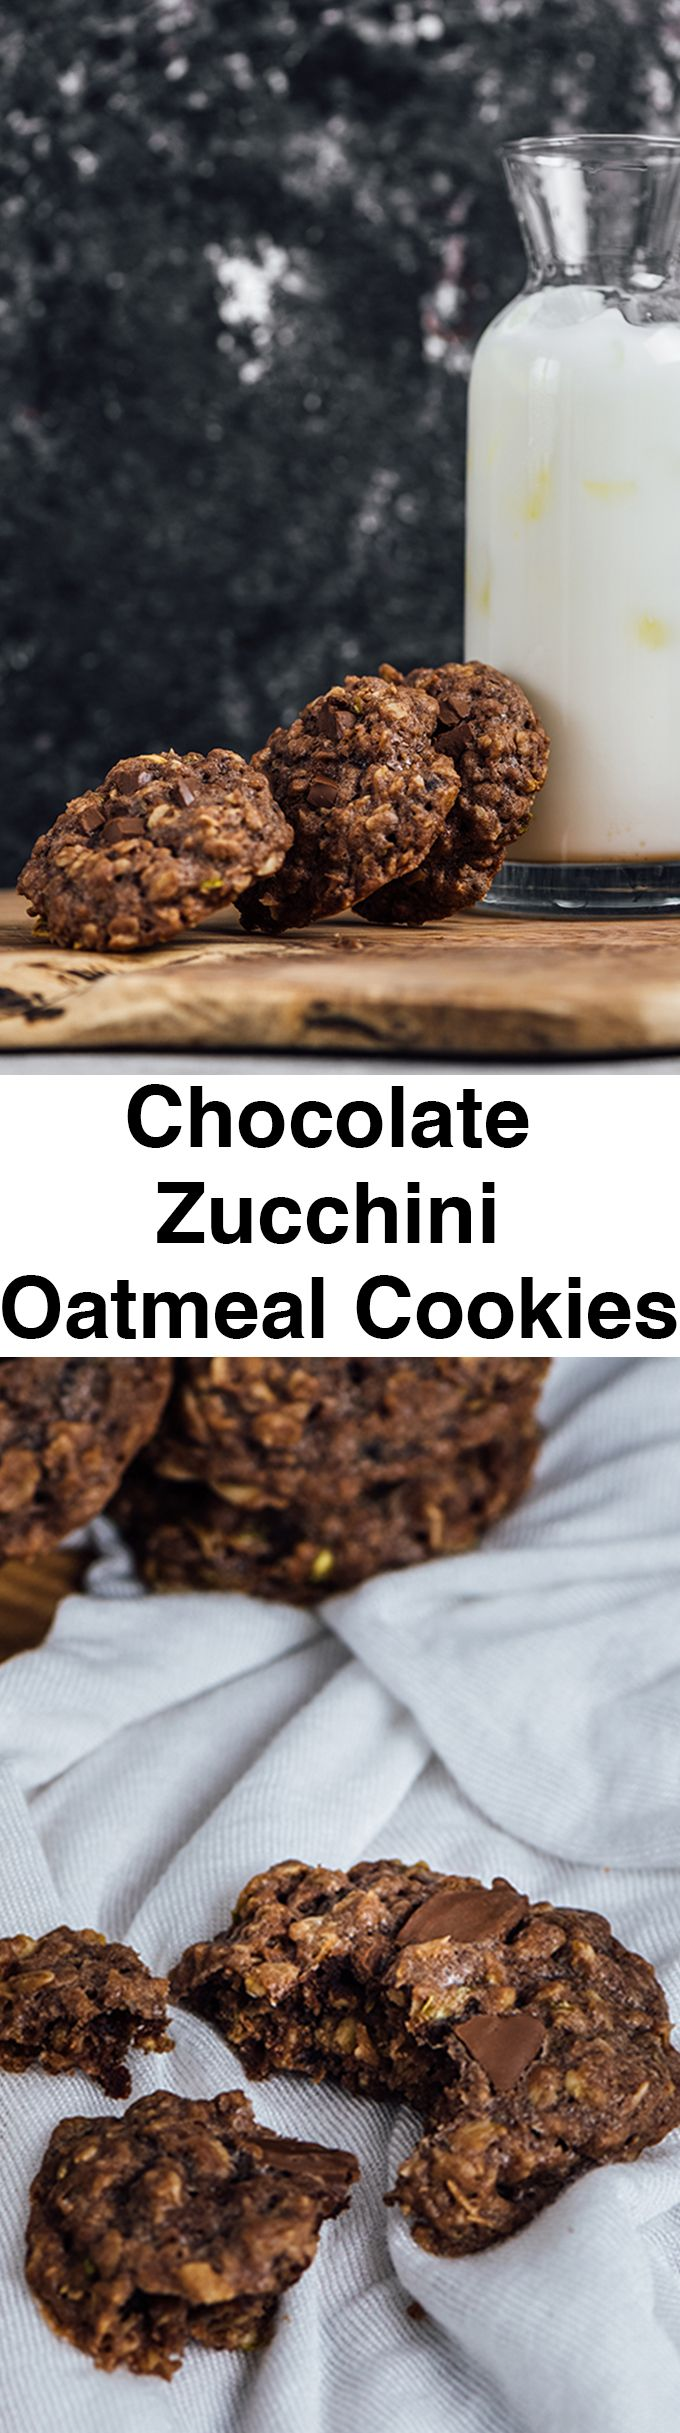 Chocolate Zucchini Oatmeal Cookies are surprisingly soft and chewy. That's how I love my cookies. Plus these have one of my favorite veggies.